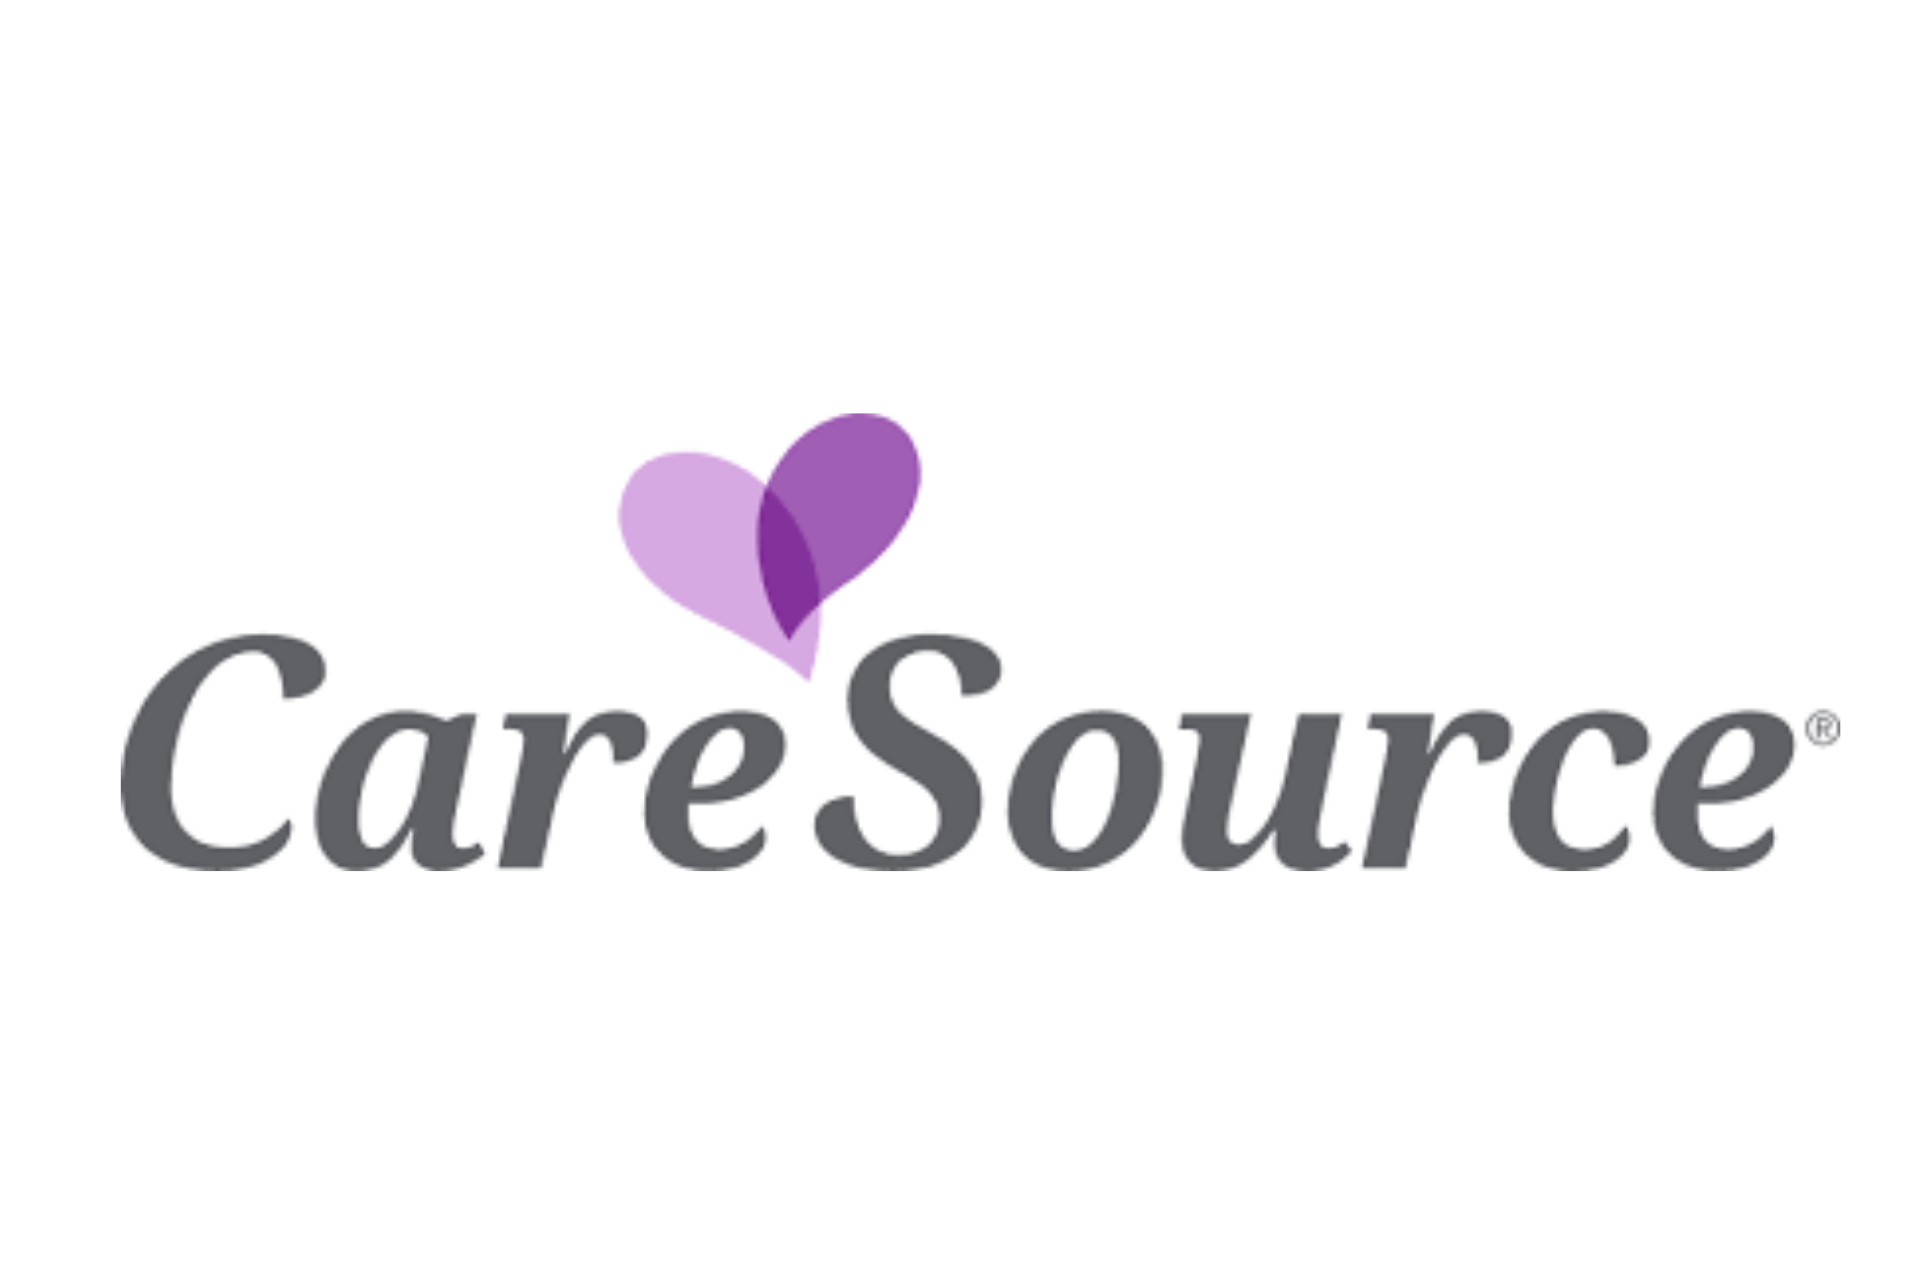 CareSourceLogo